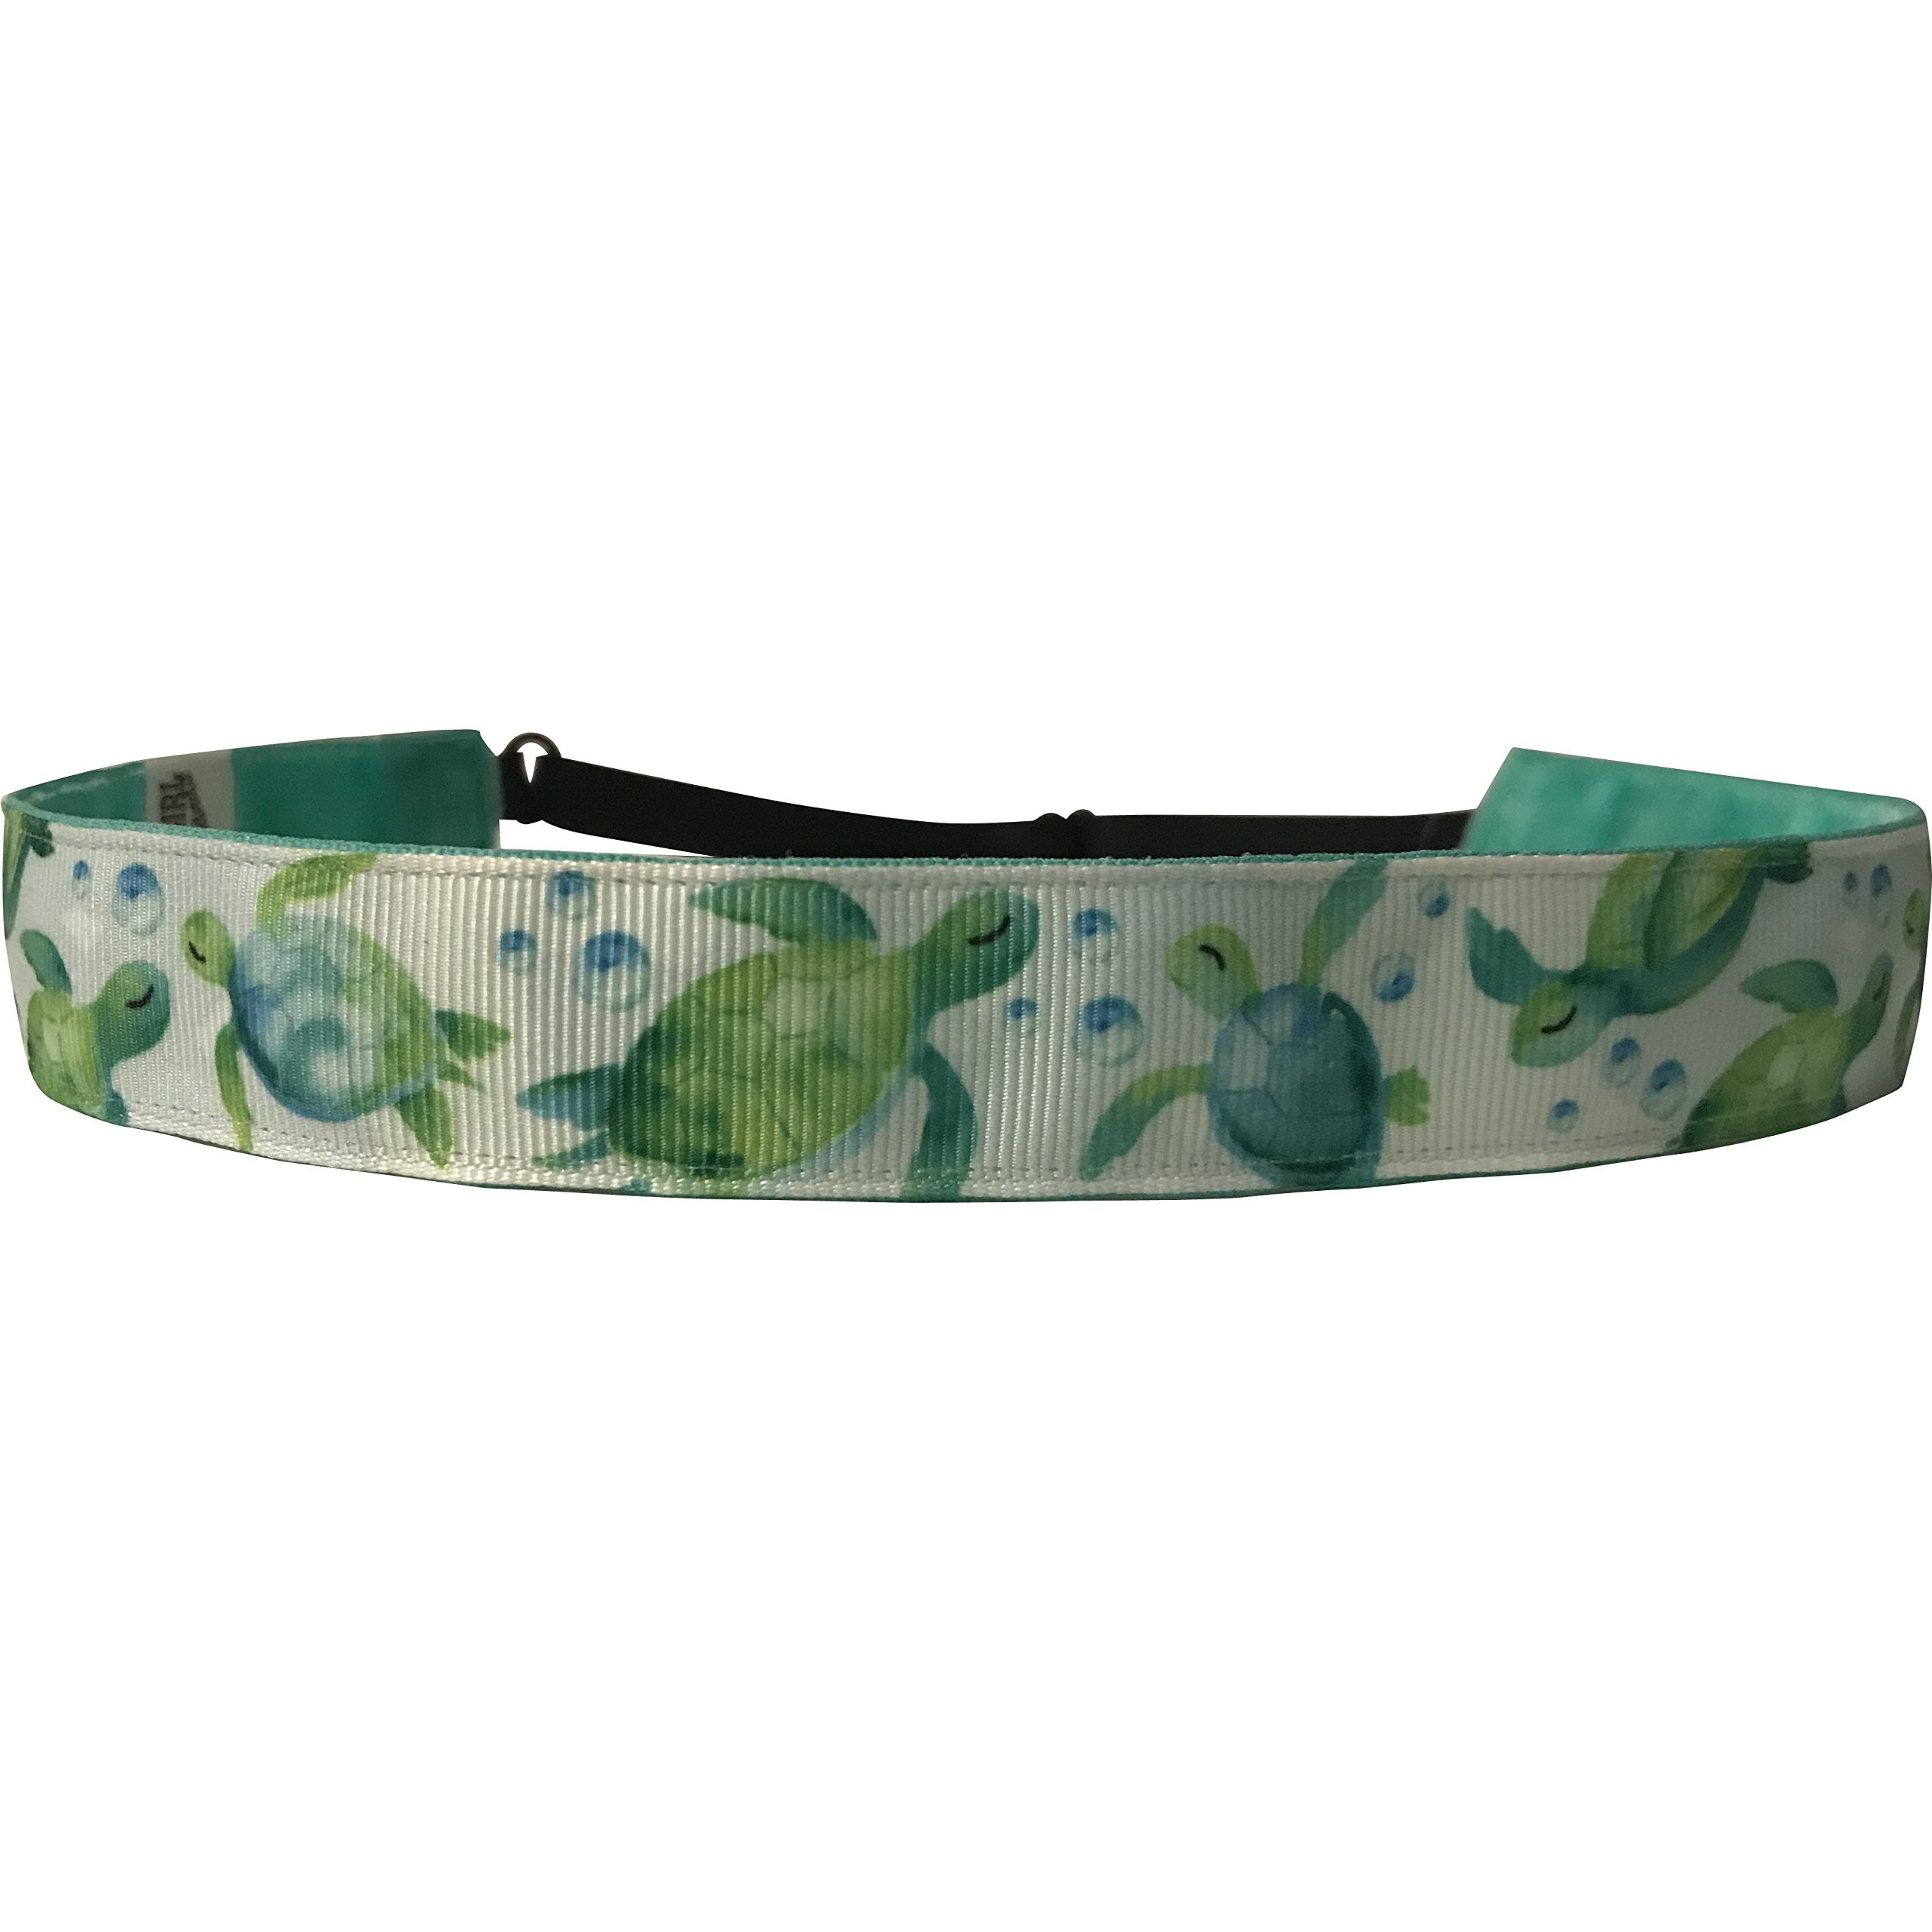 BEACHGIRL Bands Womens and Girl Headband - Non-Slip Velvet-Lined Sport Hairband Turtles